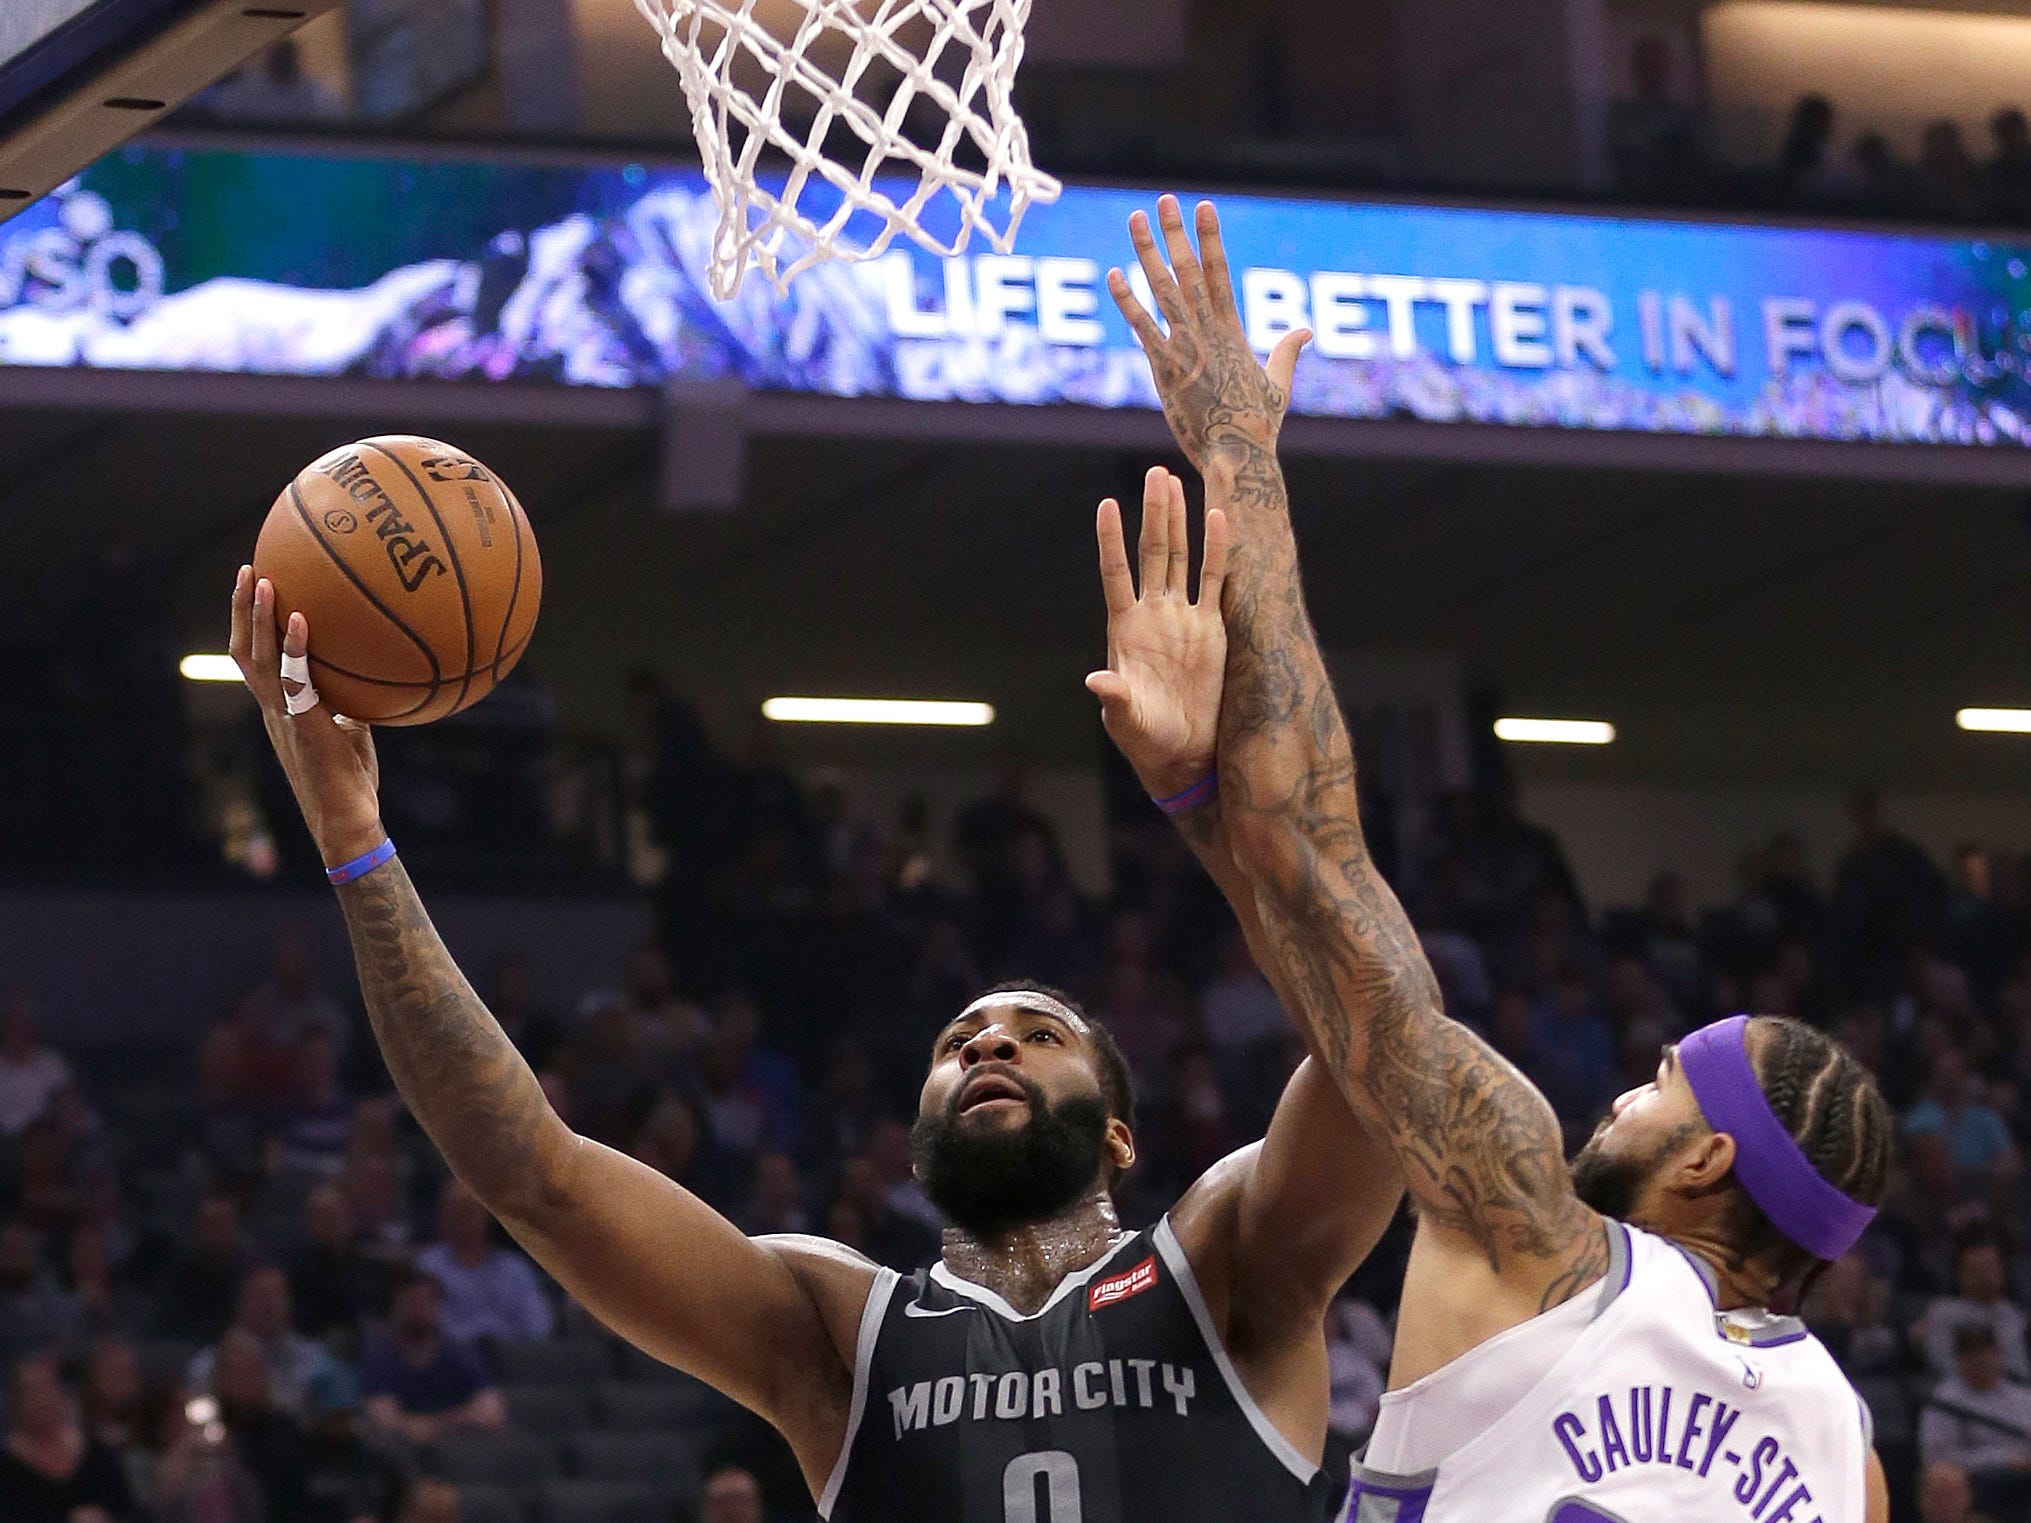 Detroit Pistons center Andre Drummond, left, goes to the basket against Sacramento Kings center Willie Cauley-Stein during the first quarter of an NBA basketball game Thursday, Jan. 10, 2019, in Sacramento, Calif.